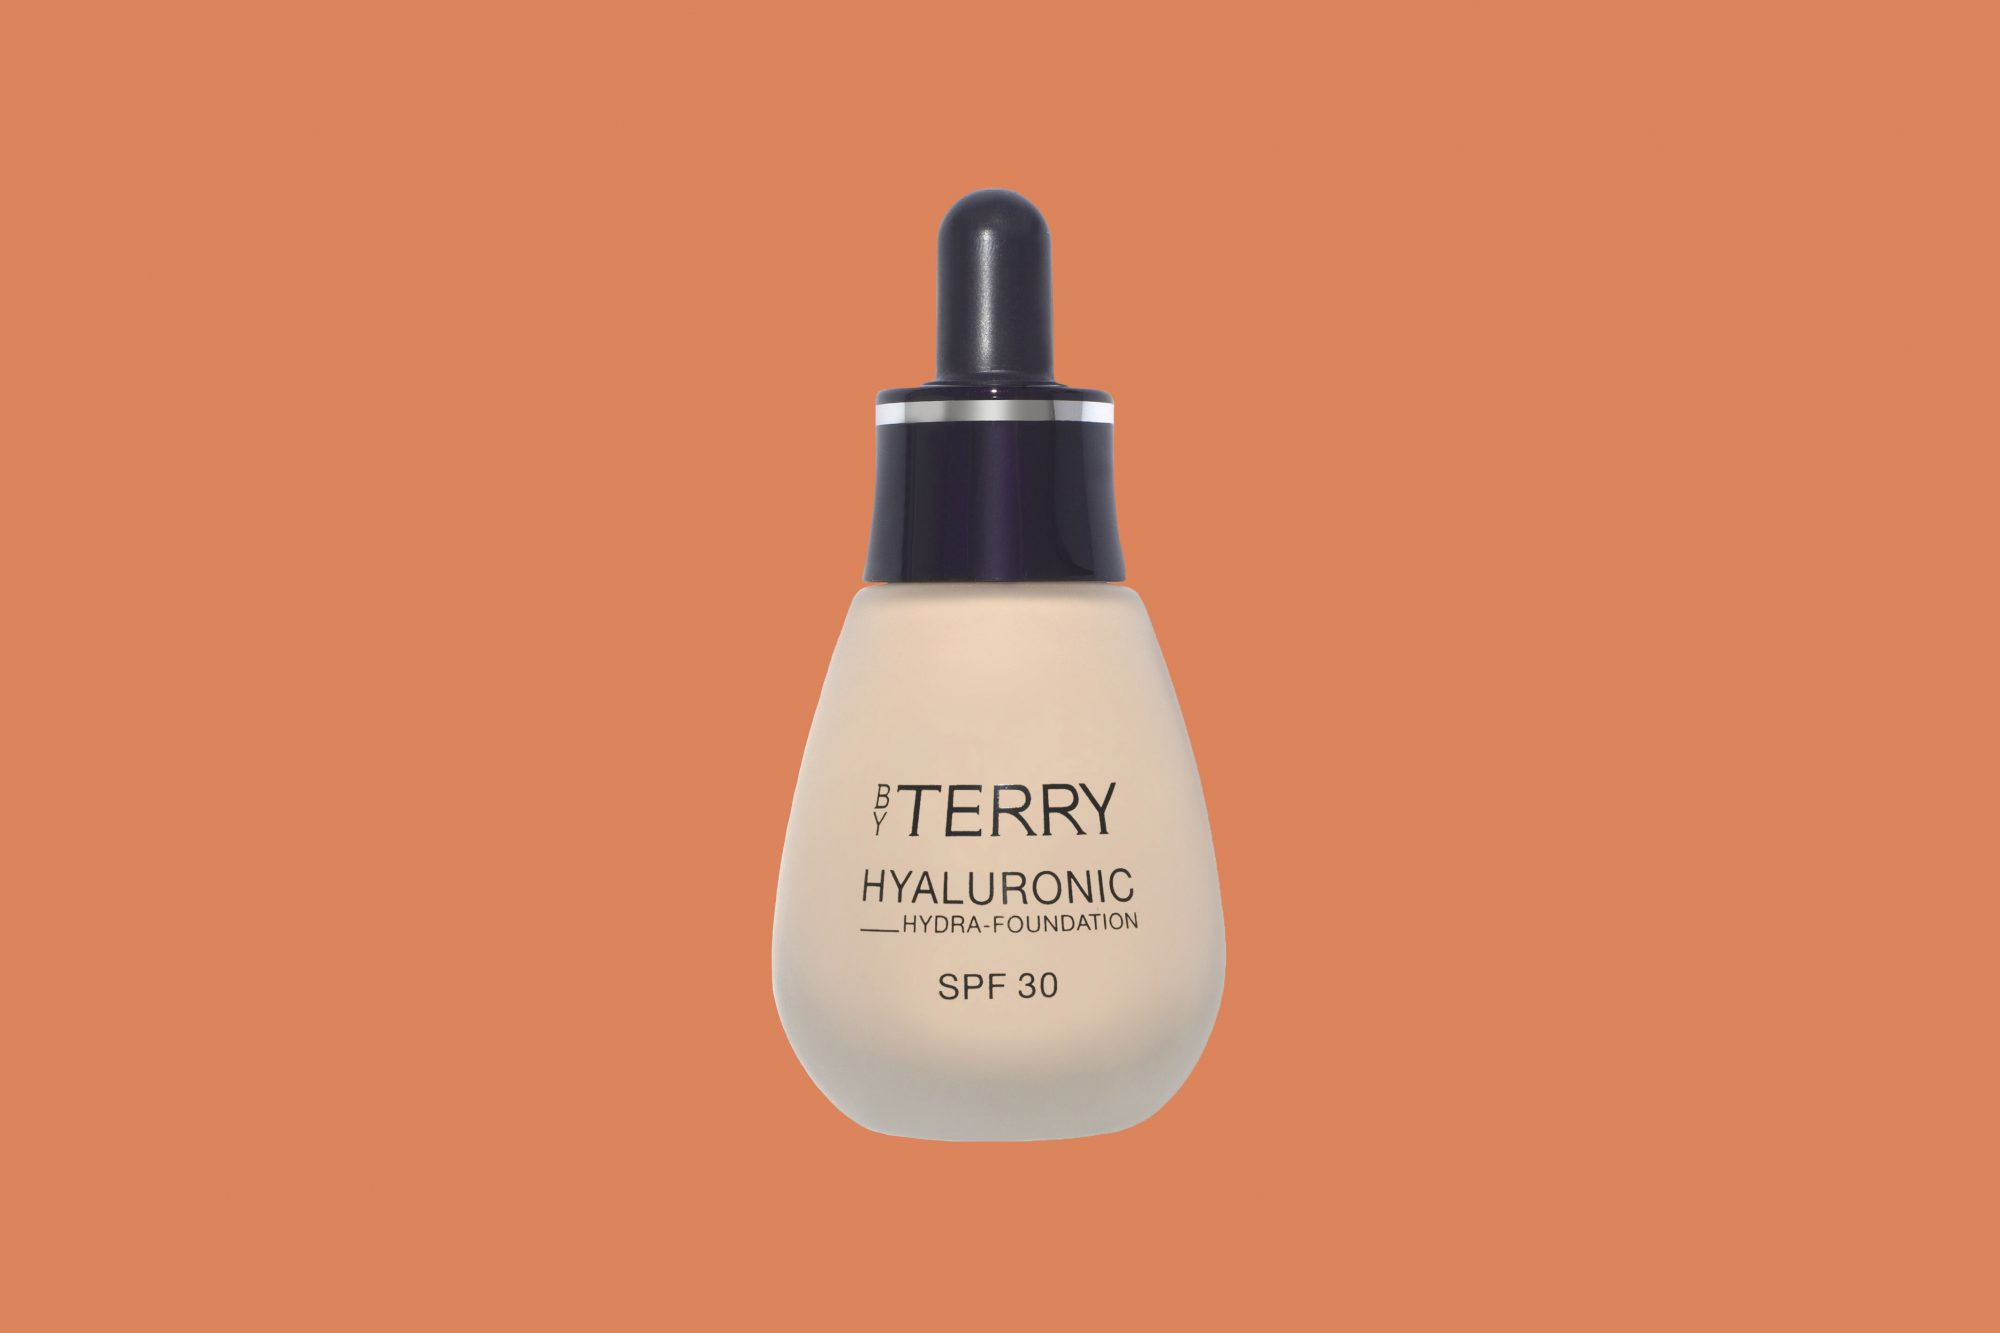 By Terry Hyaluronic Hydra-Foundation